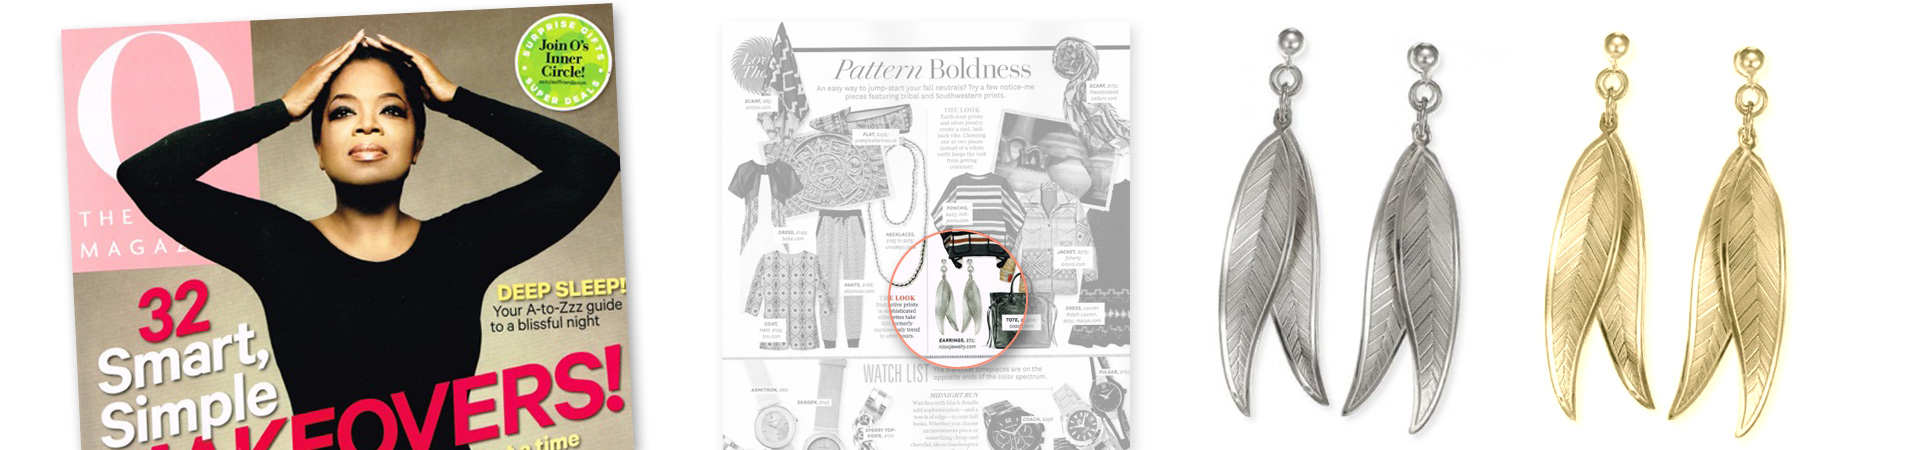 Double Feather Earring As Featured in Oprah Magazine